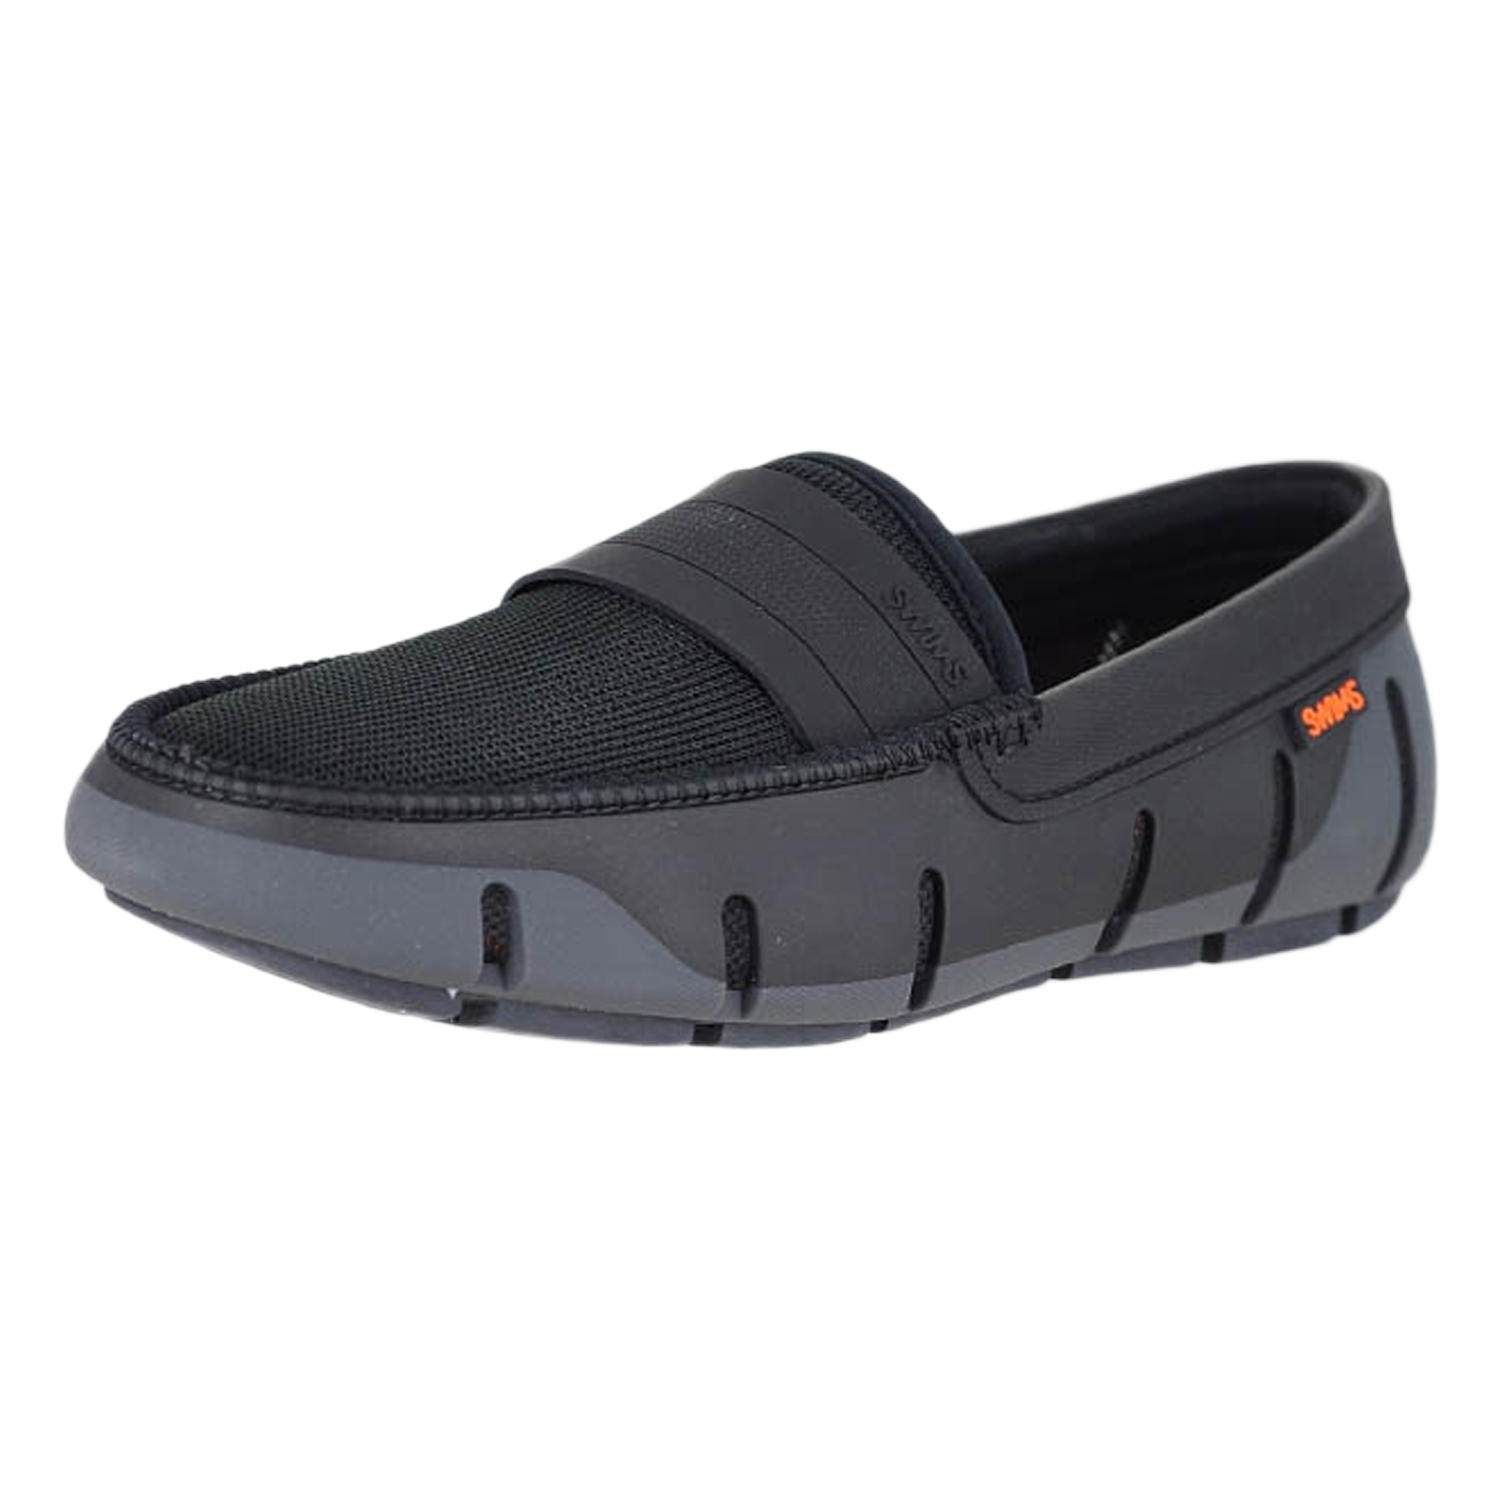 5aa3e55b9a3 Details about Swims Stride Single Band Keeper Graphite Black Mens Loafers  Size 13M